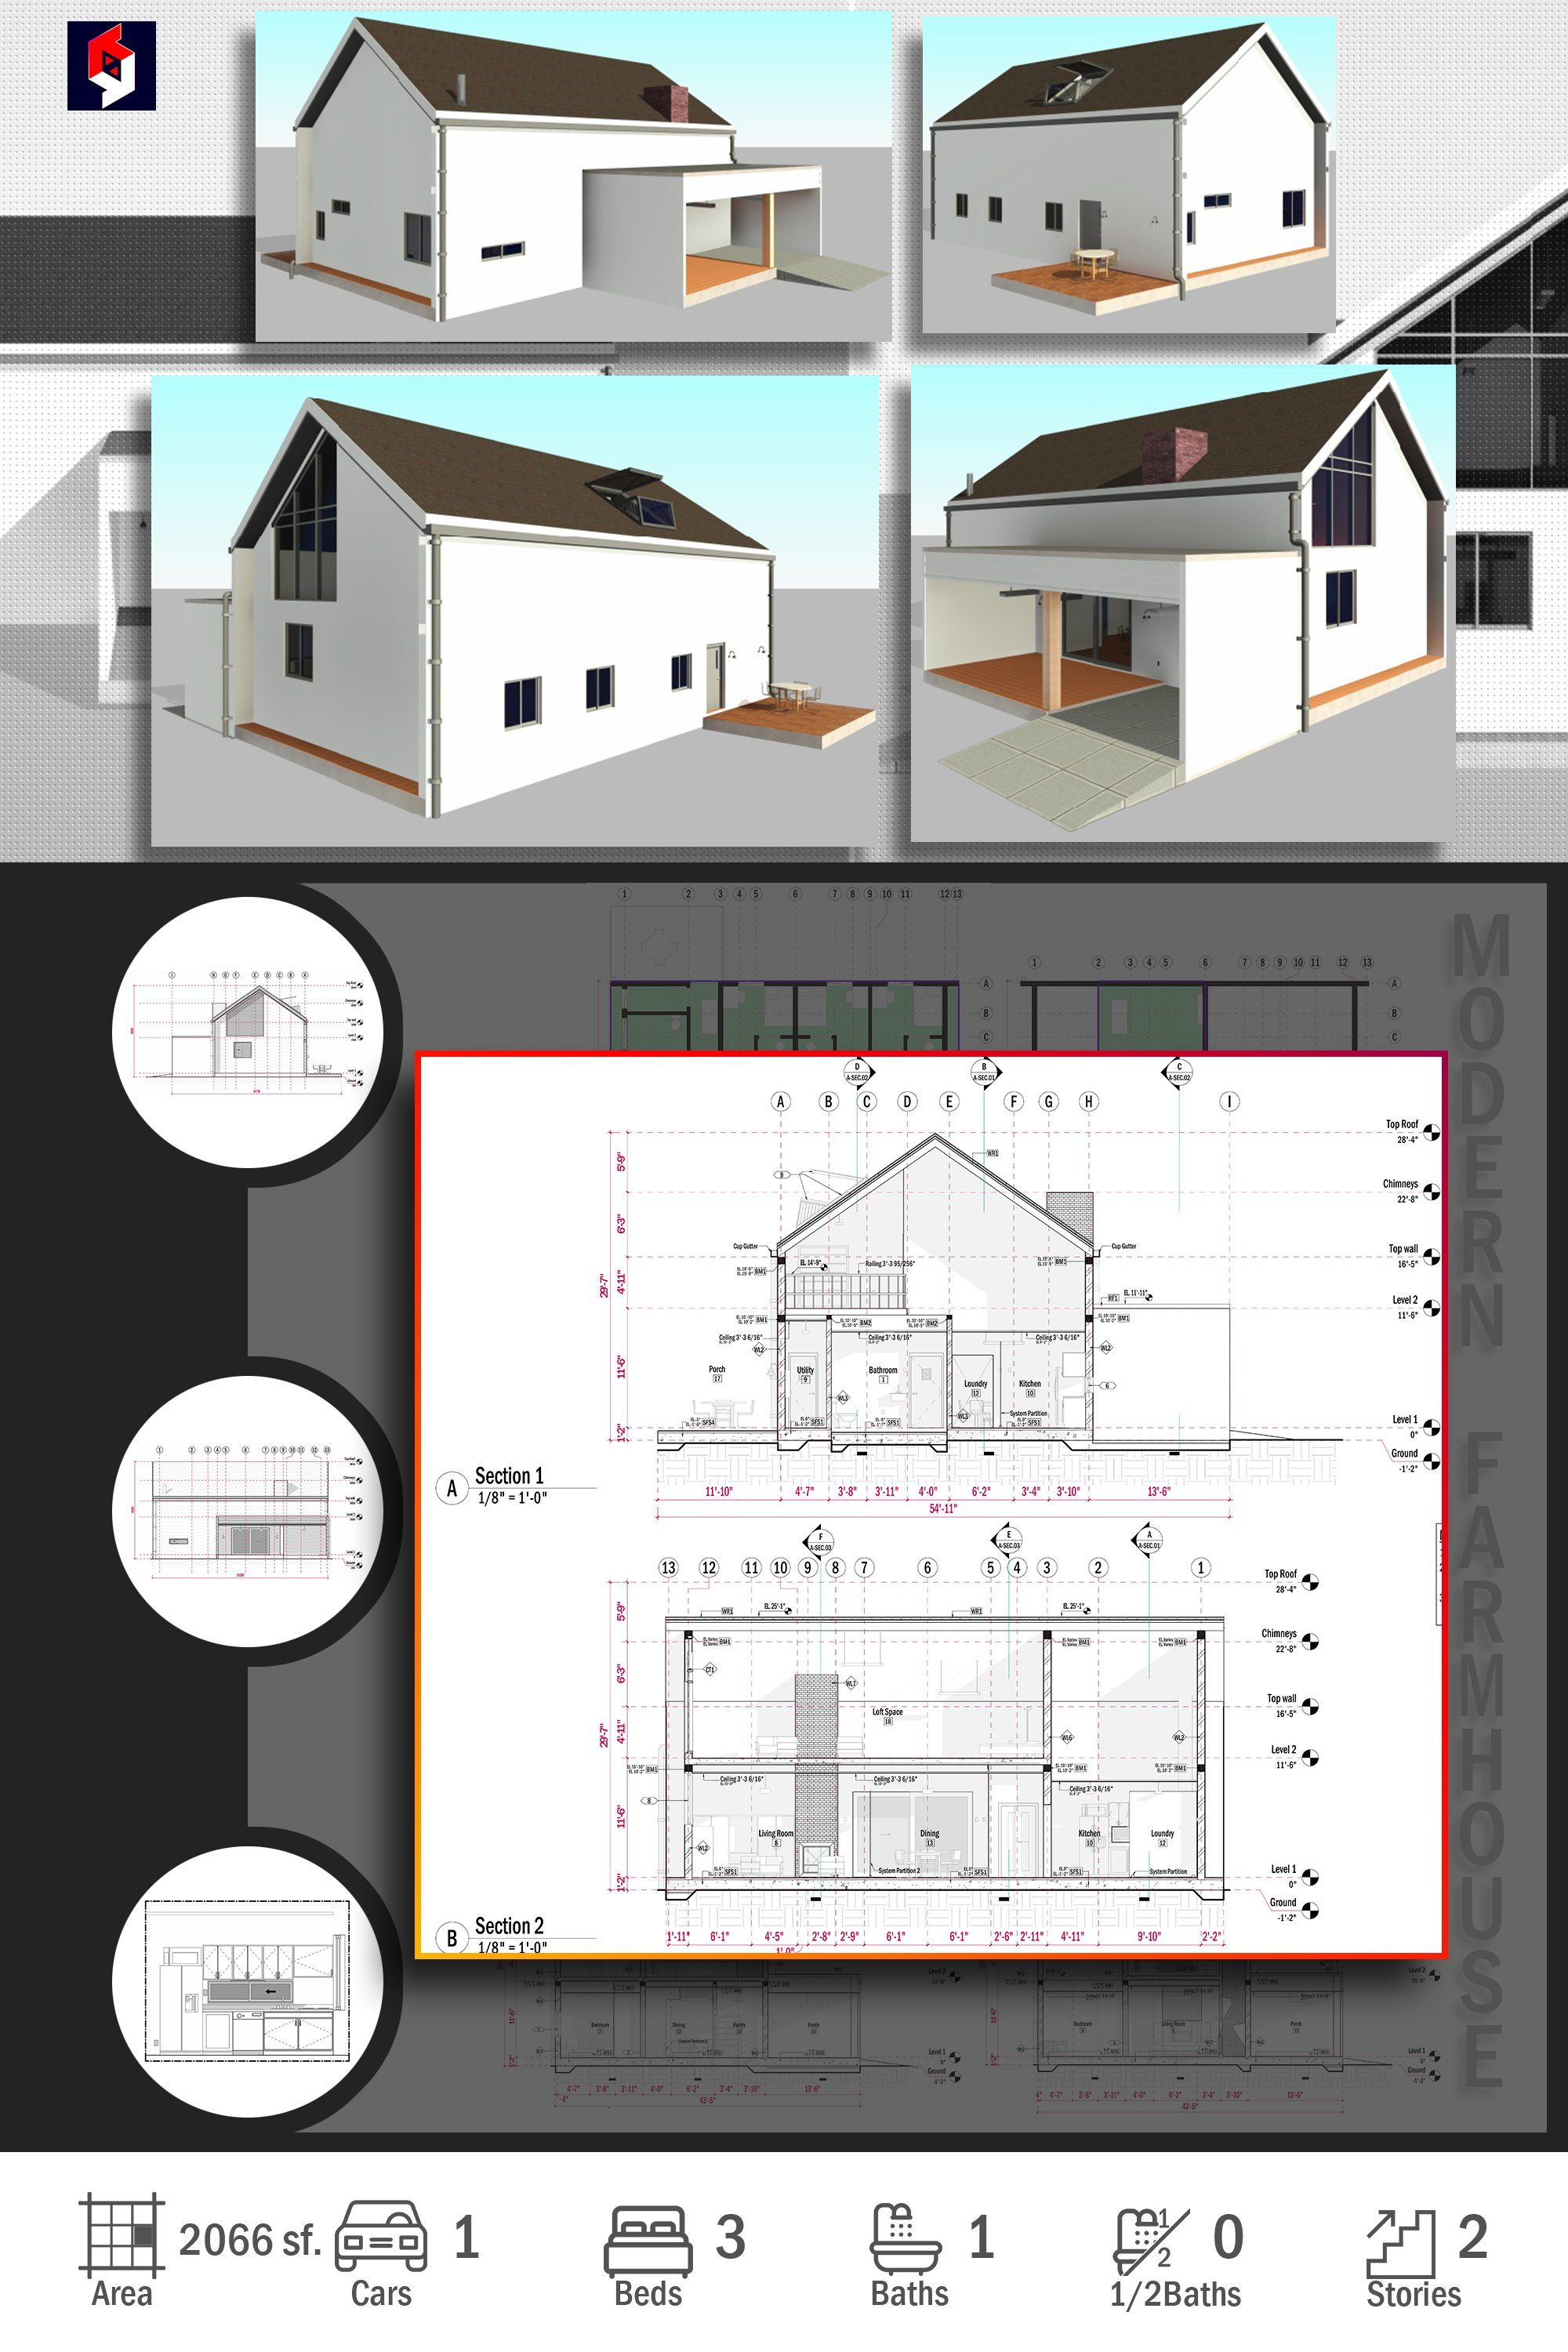 Modern Farmhouse Plan and Architecture Design Drawing MF1 Blueprints Cad Dwg Revit or Pdf File with 3 bedrooms 1 bathrooms Imperial and Metric Units